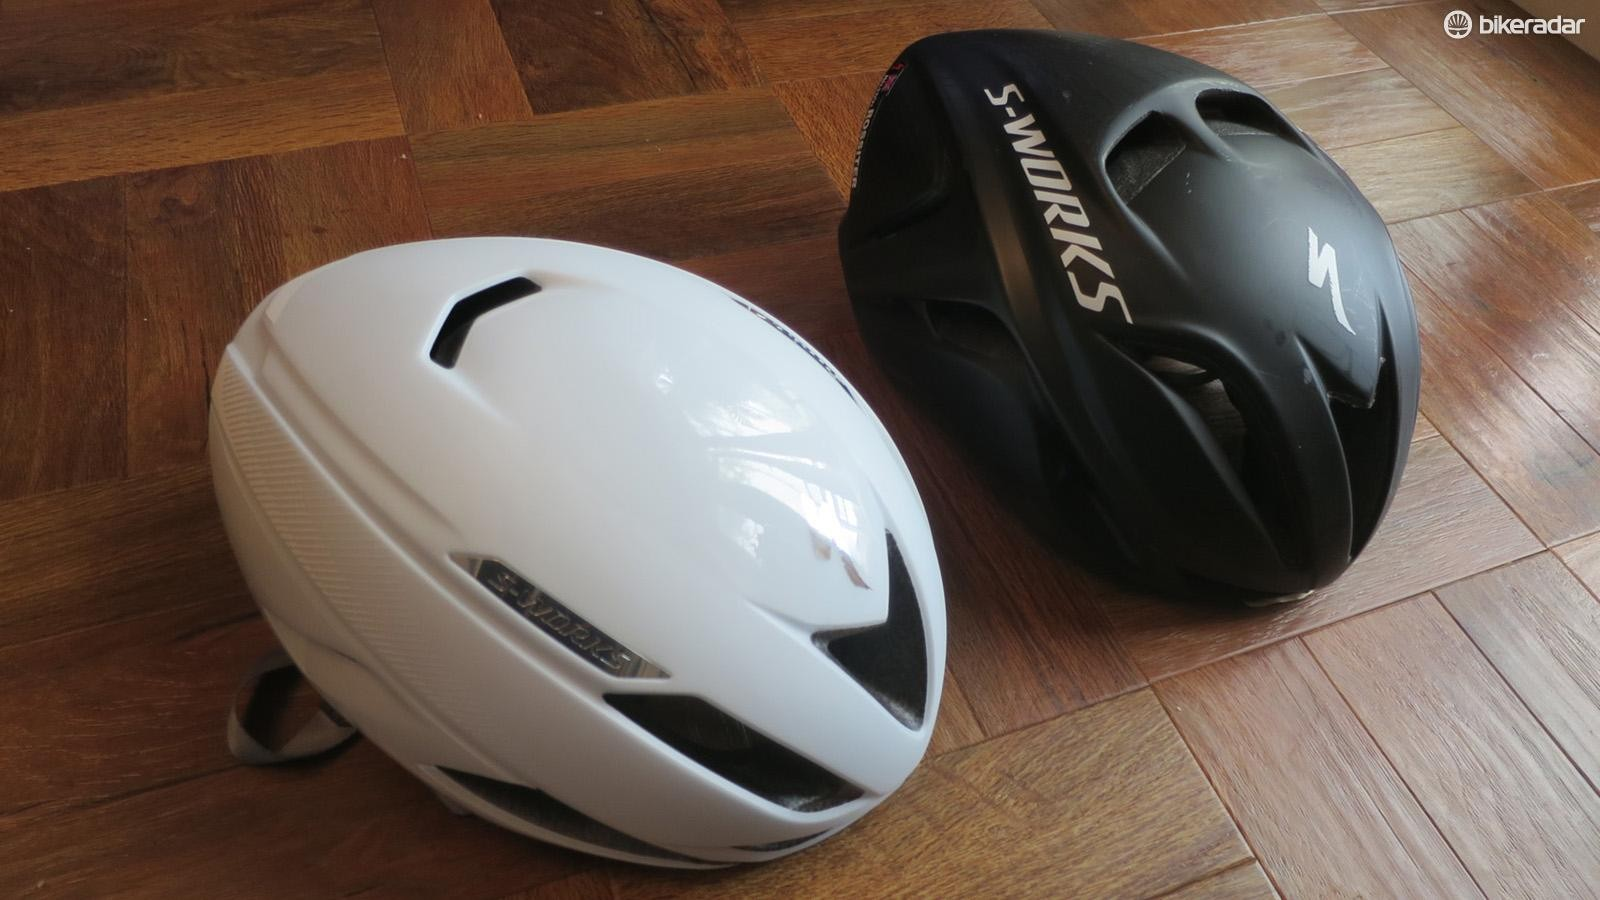 The Evade II looks smaller and sharper edged when compared to the original Evade